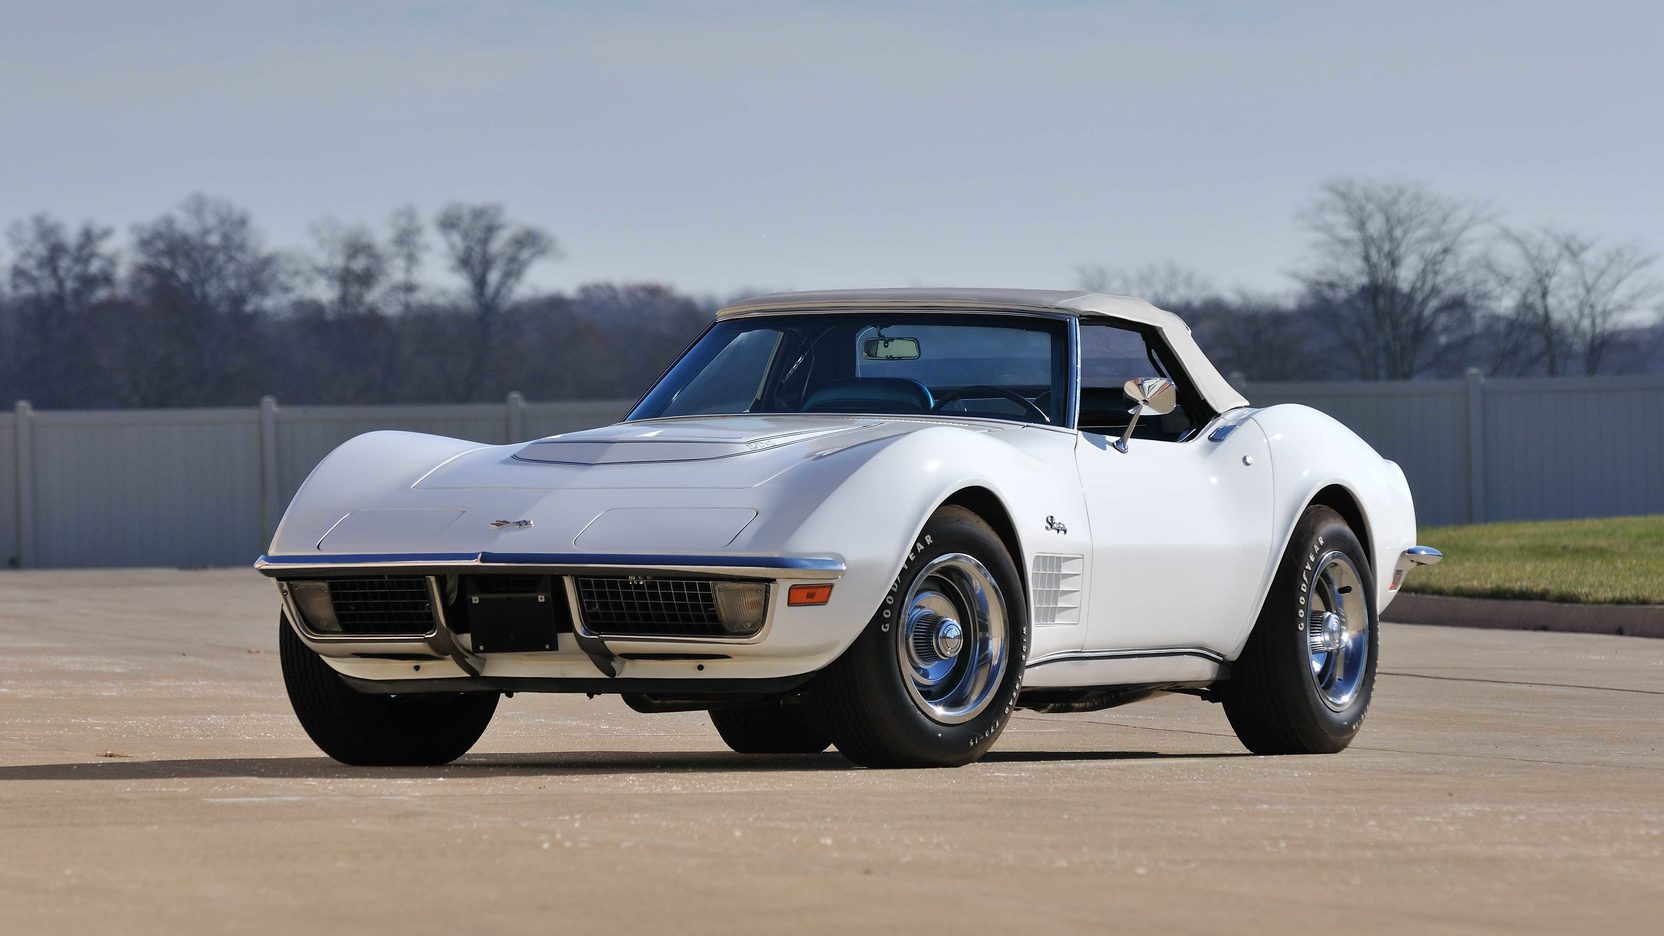 The 1970 Corvette ZR-1